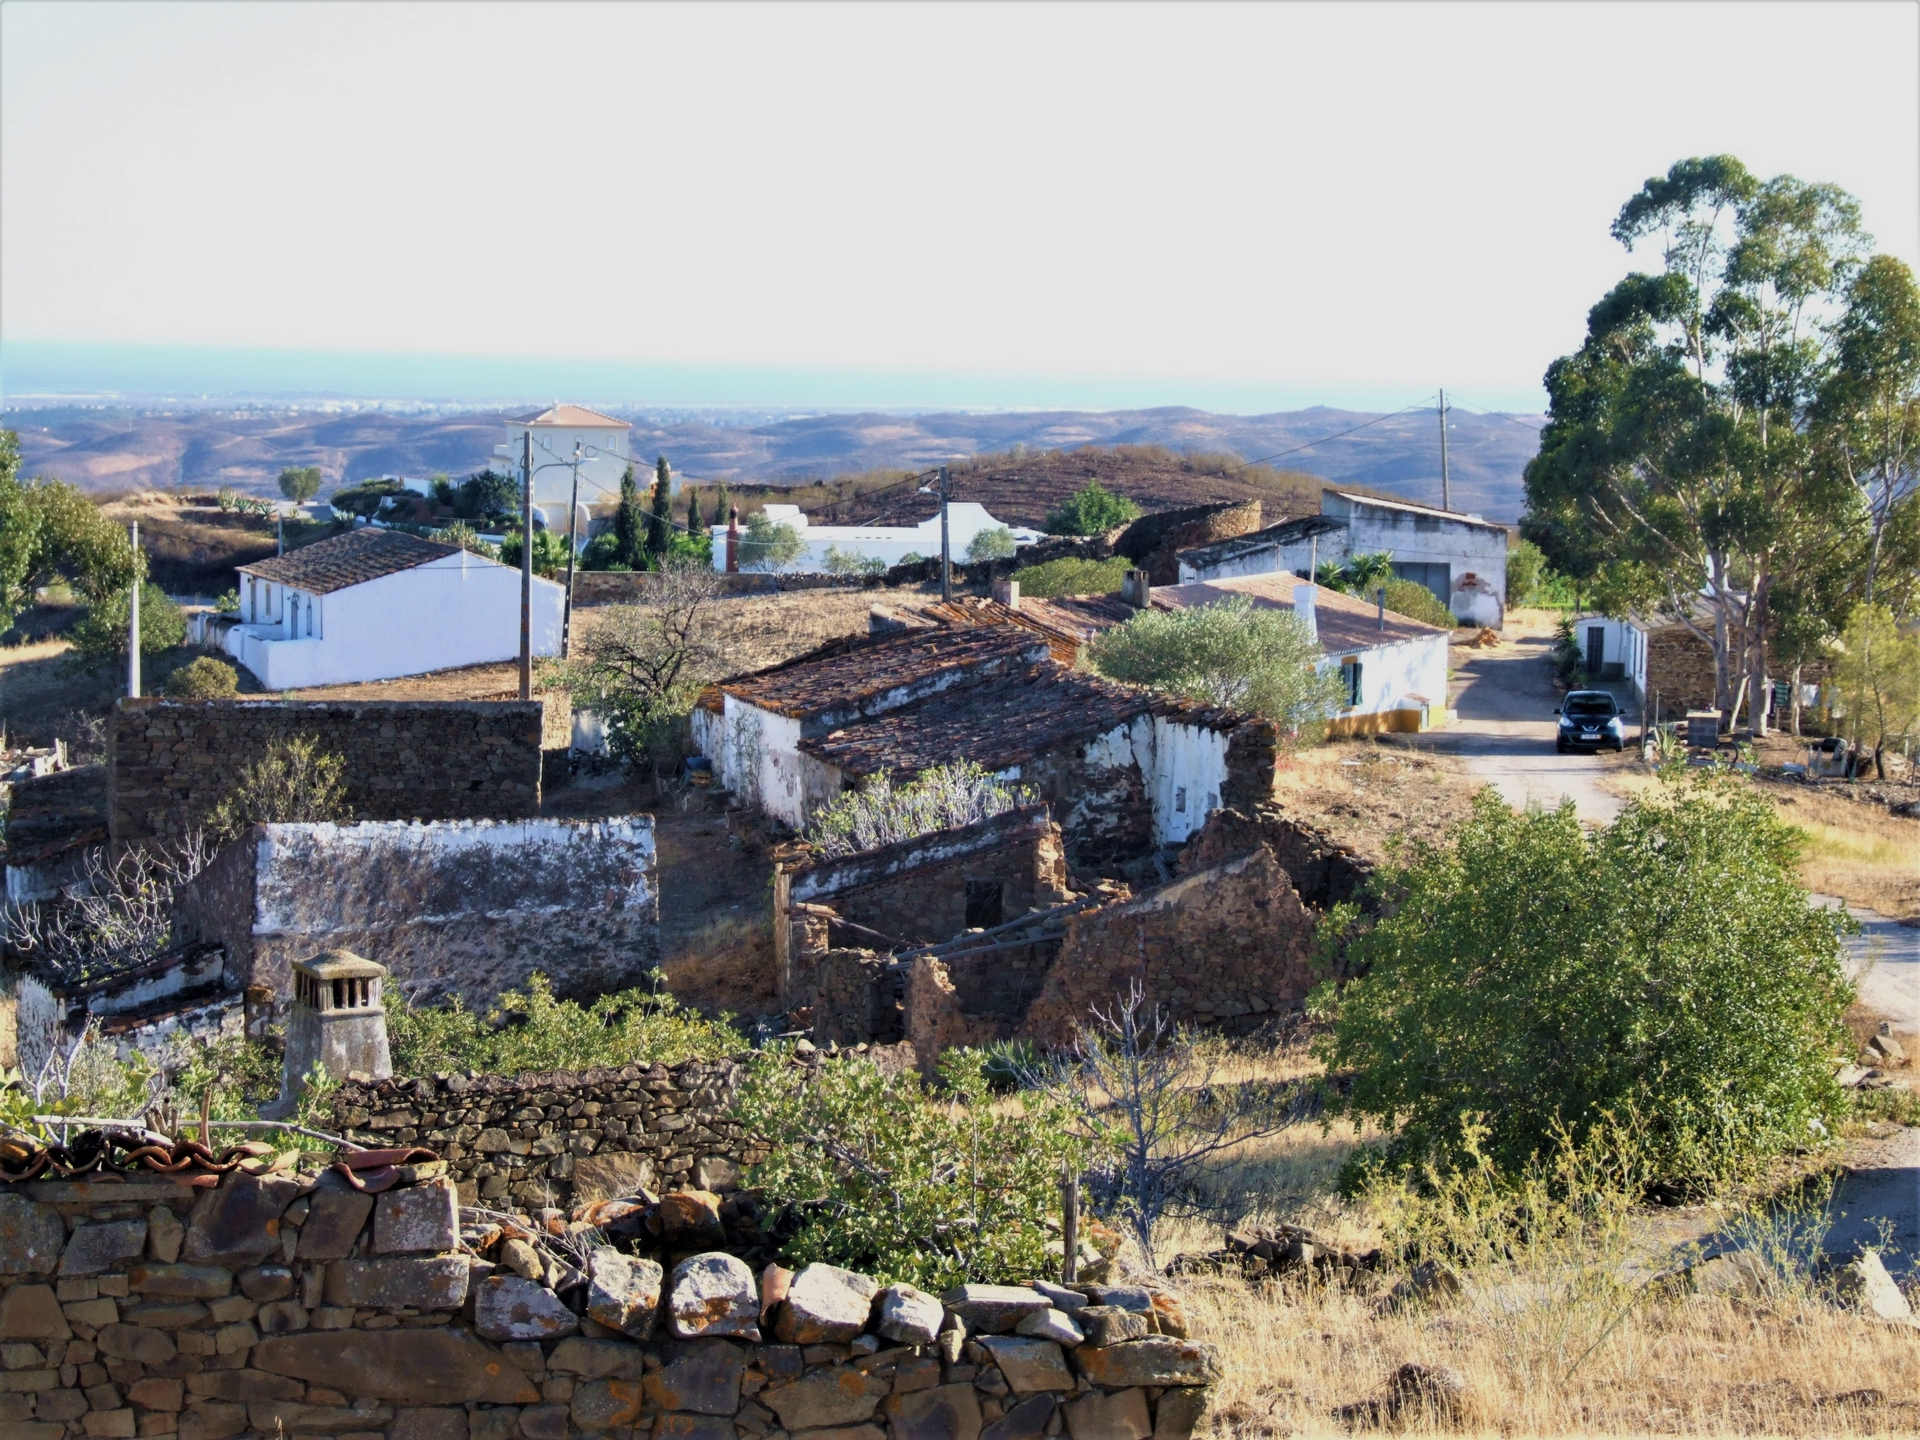 P0568 - A Hilltop Plot on the Edge of An Old Village  Tavira  Portugal